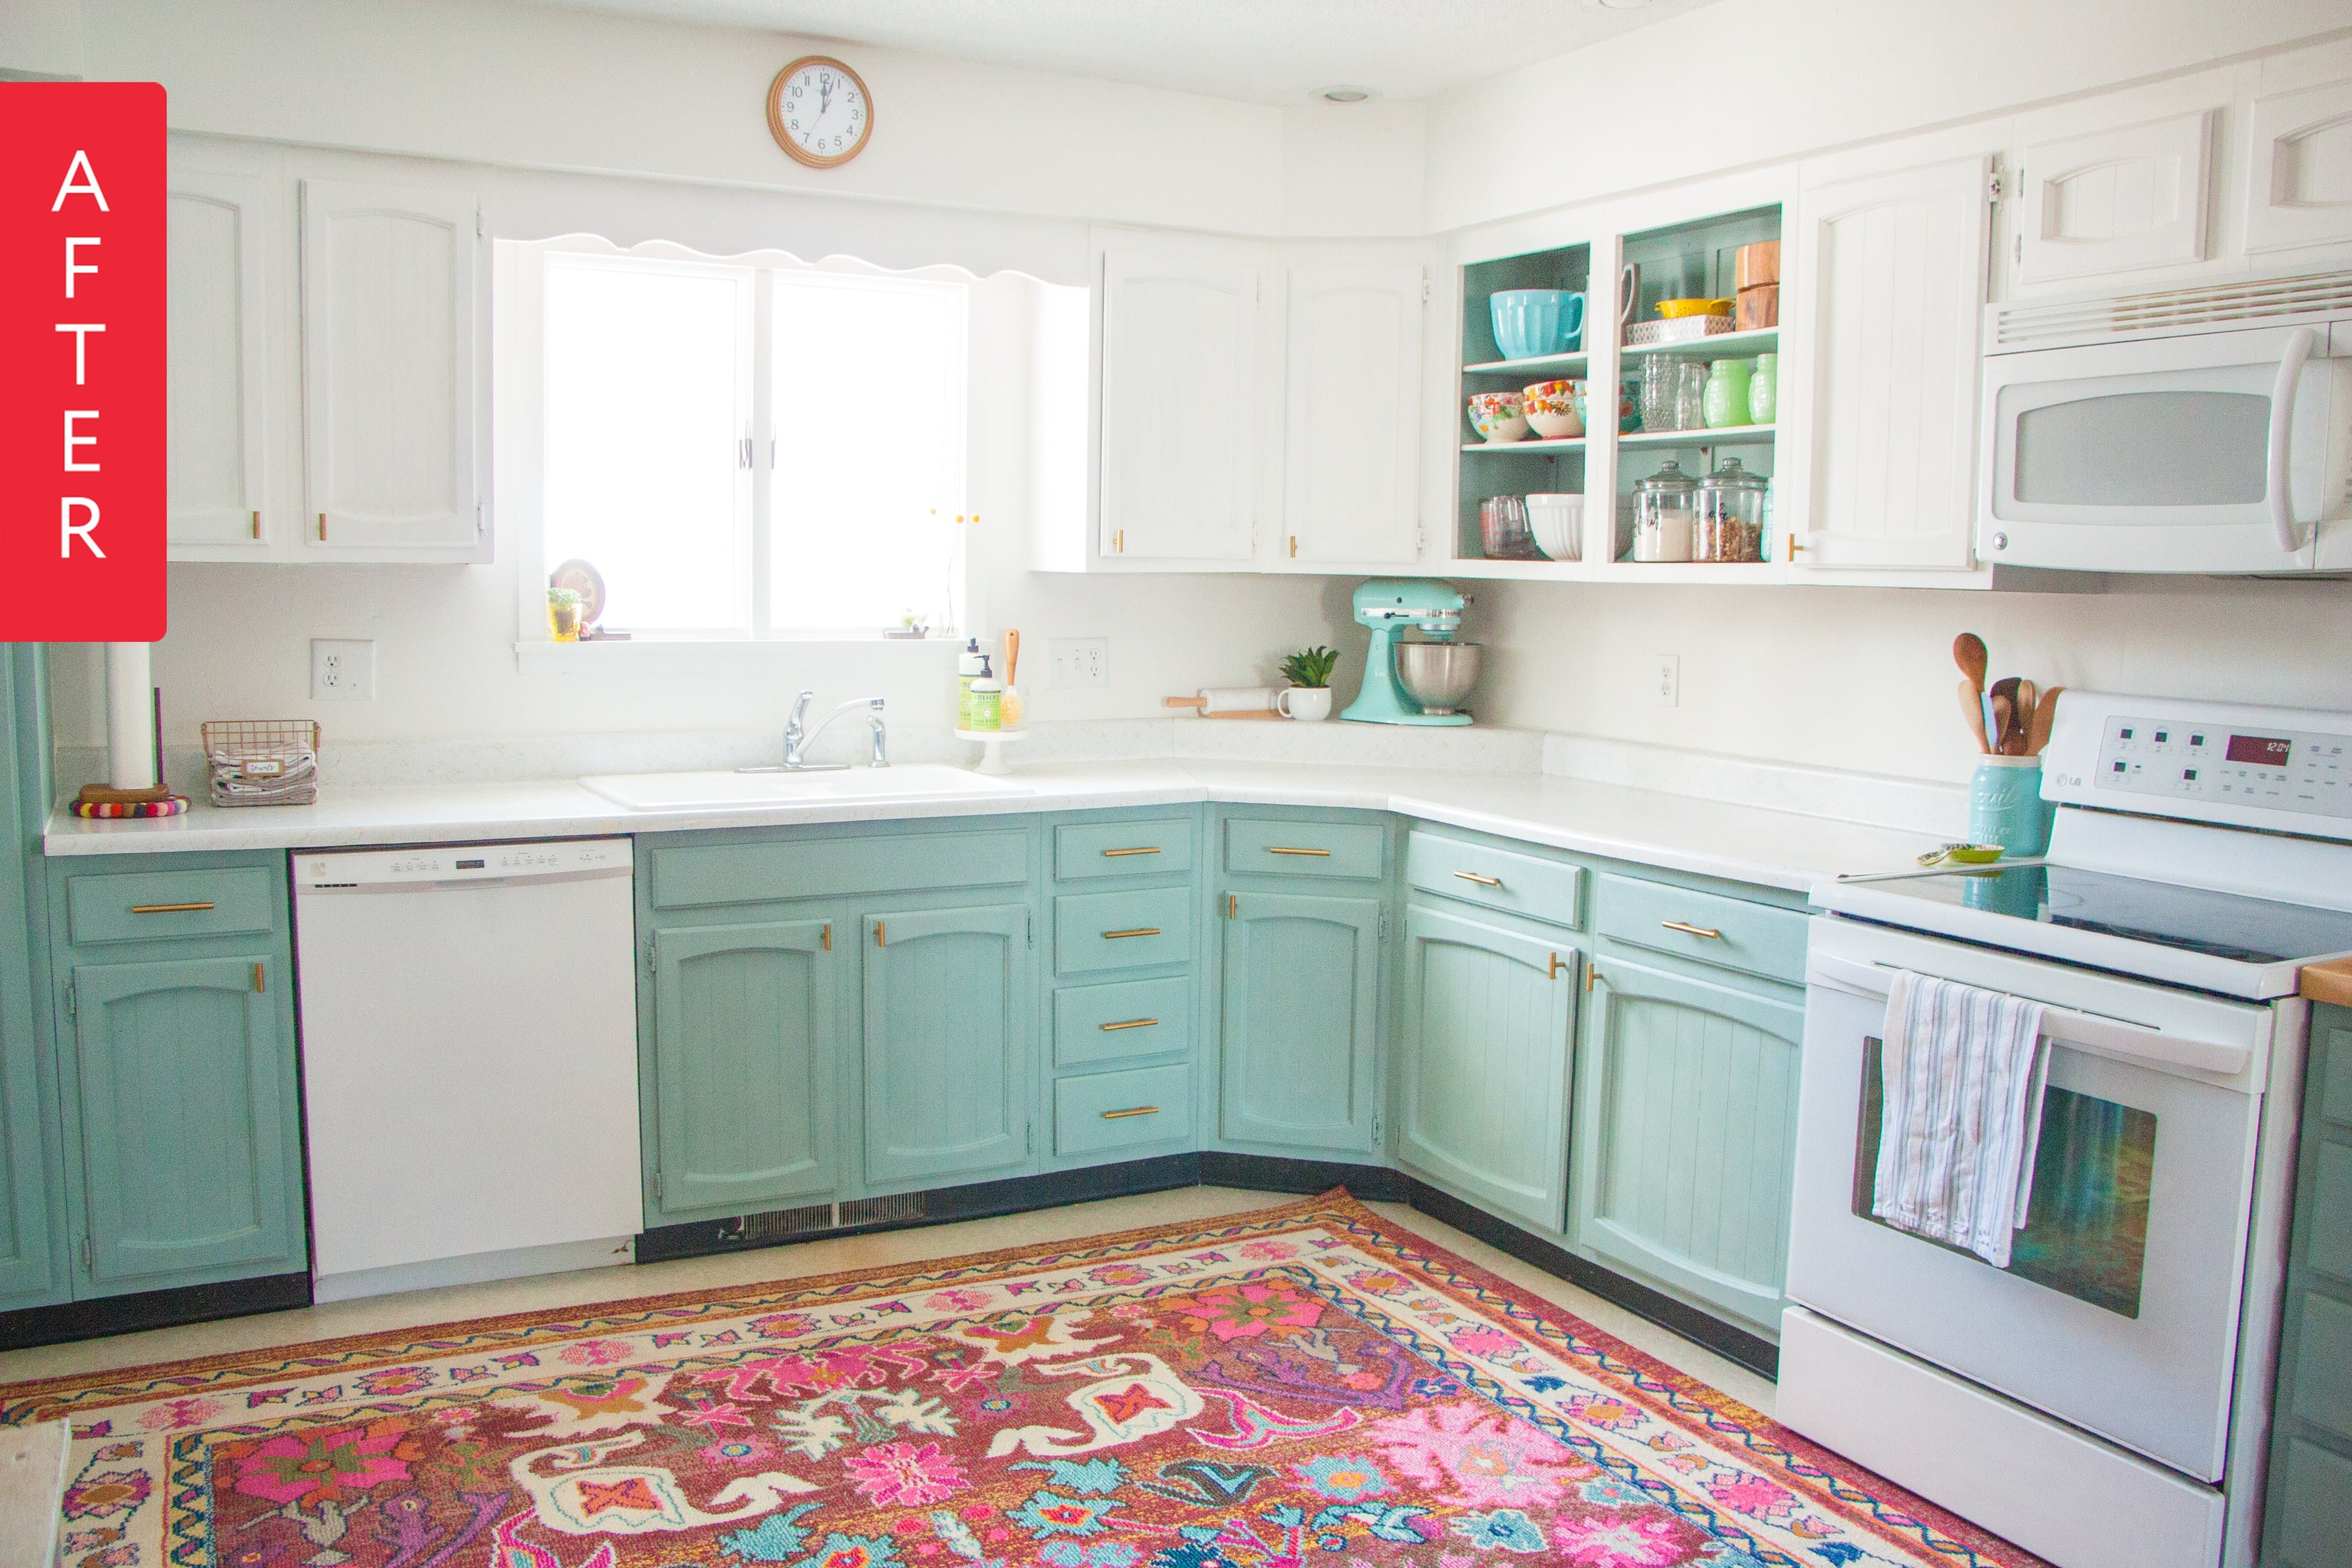 Before & After: An Under $200 Creatively Colorful Kitchen Makeover ...